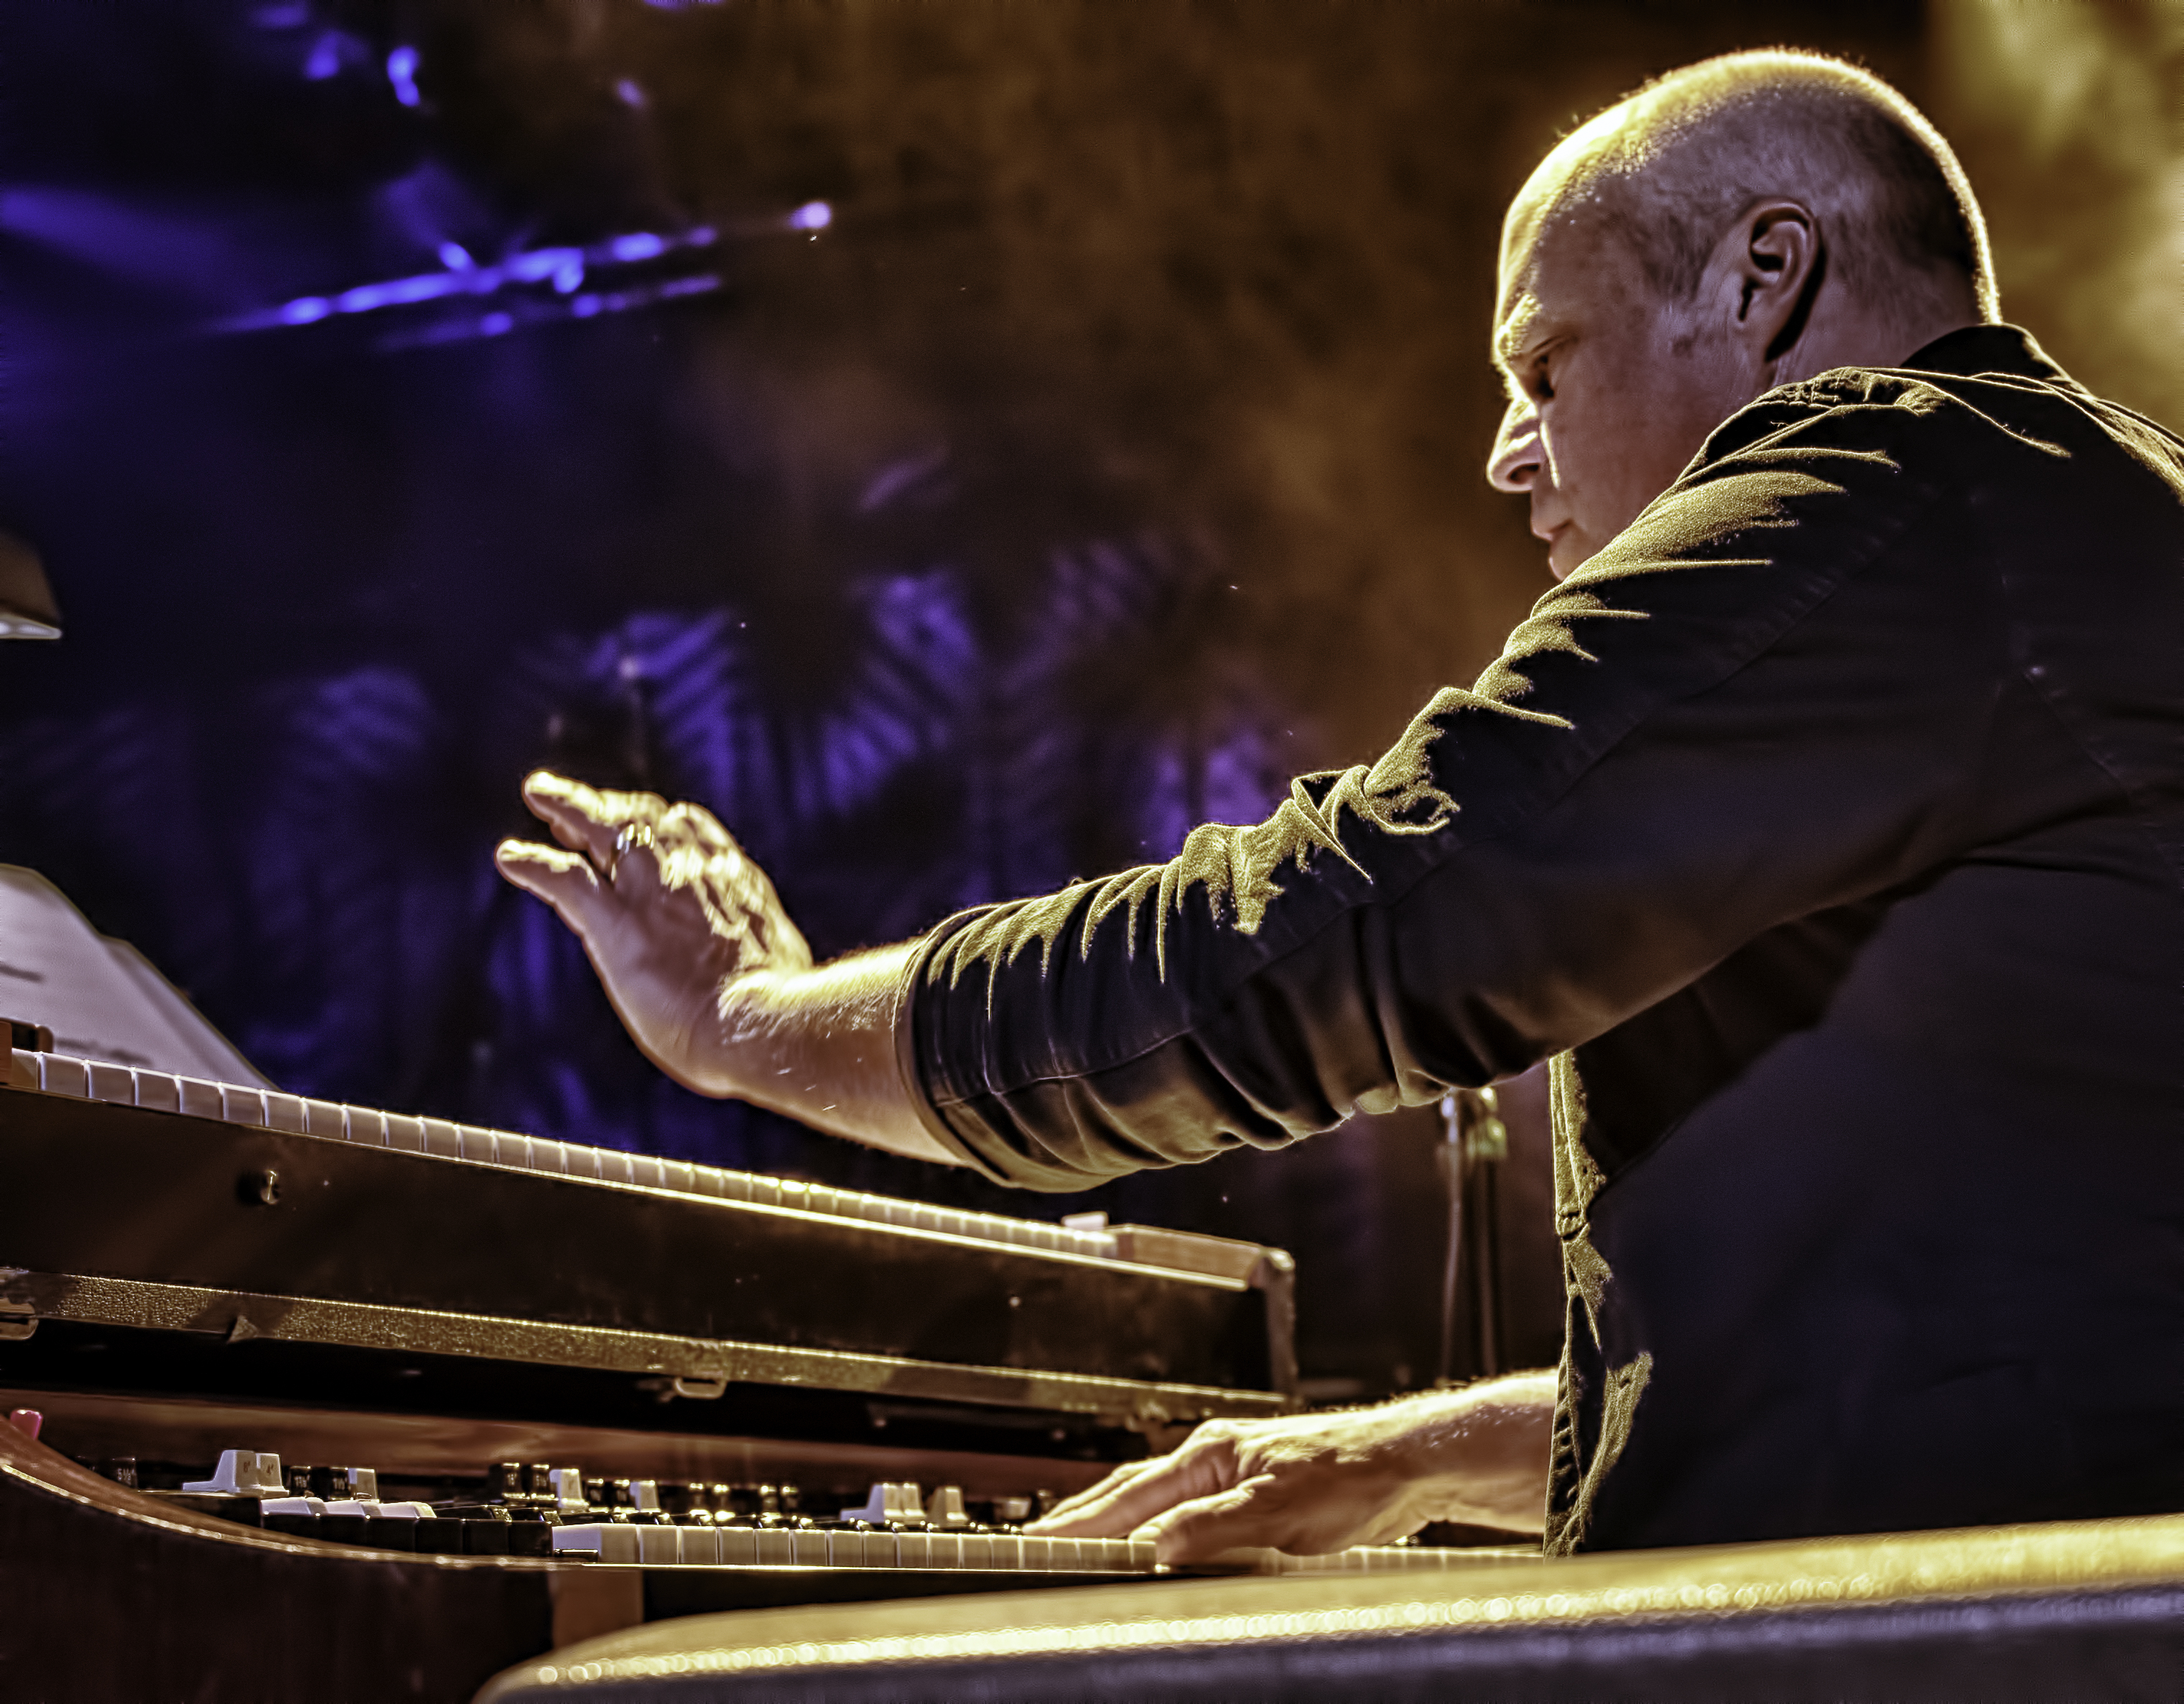 John Medeski with Medeski, Martin and Wood and Alarm Will Sound at the NYC Winter Jazzfest 2019